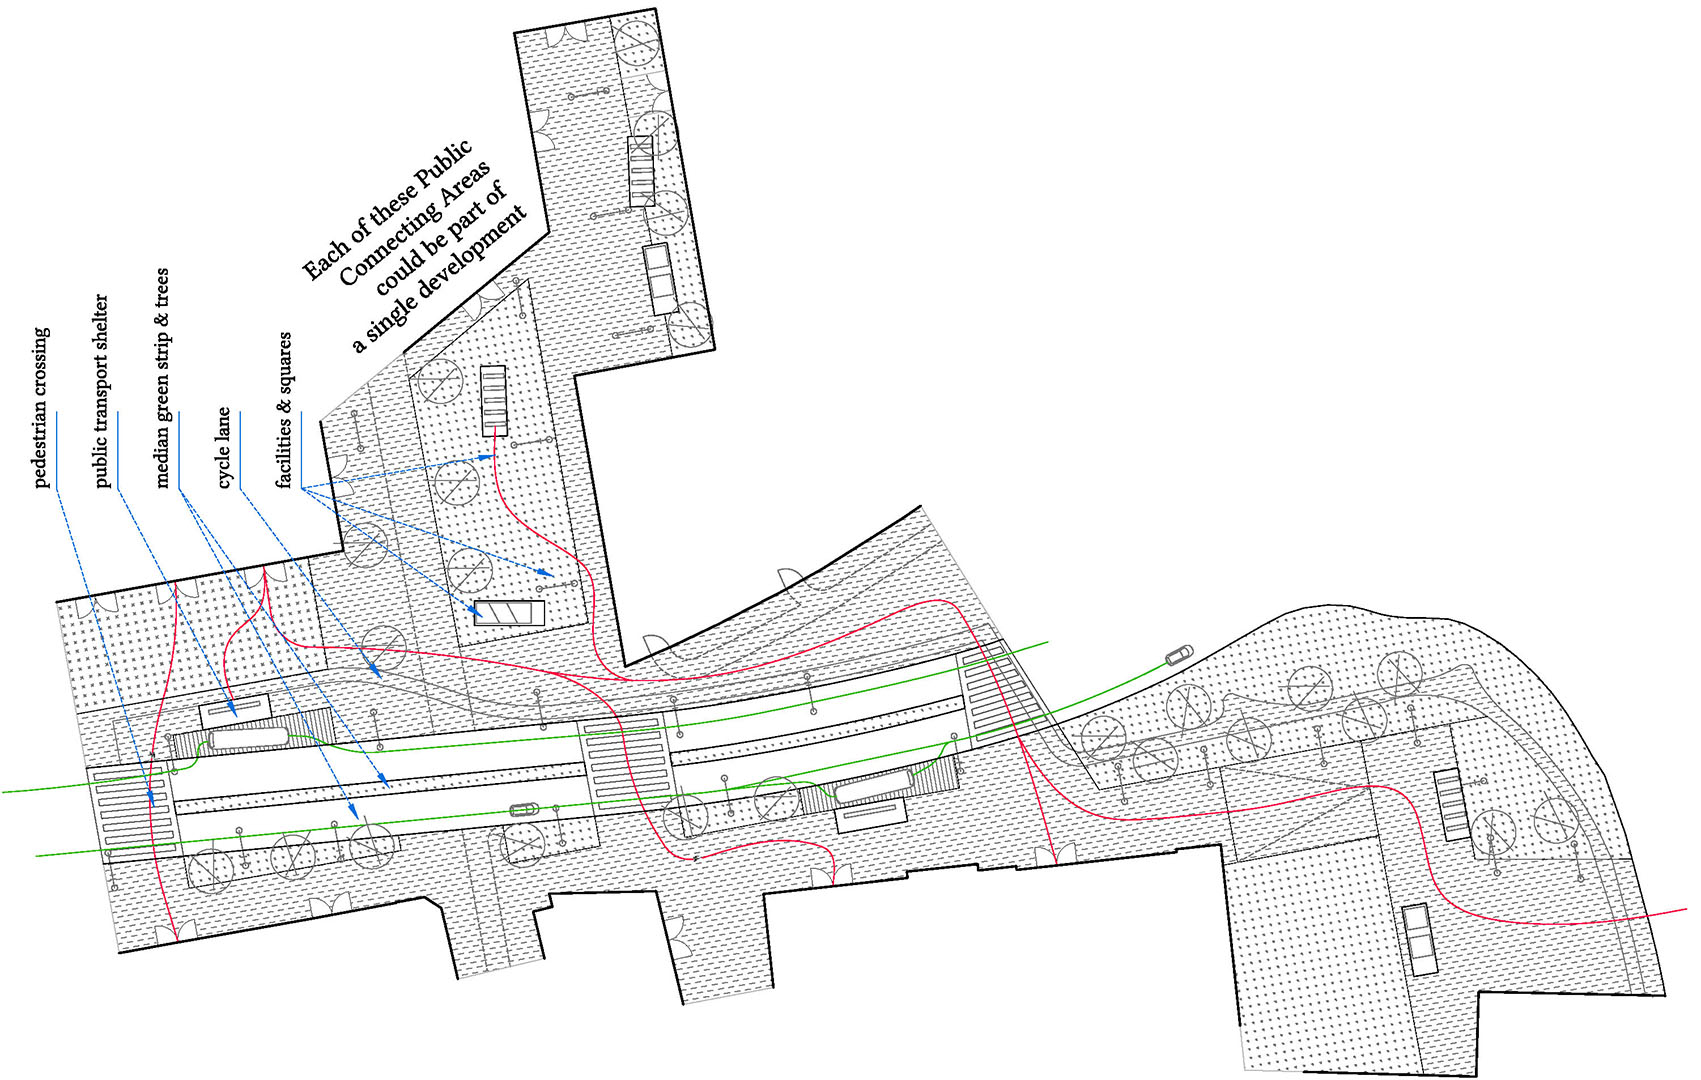 06 PLAYstudio Kune Europan 13 Bruck - Plan Public Space Detail